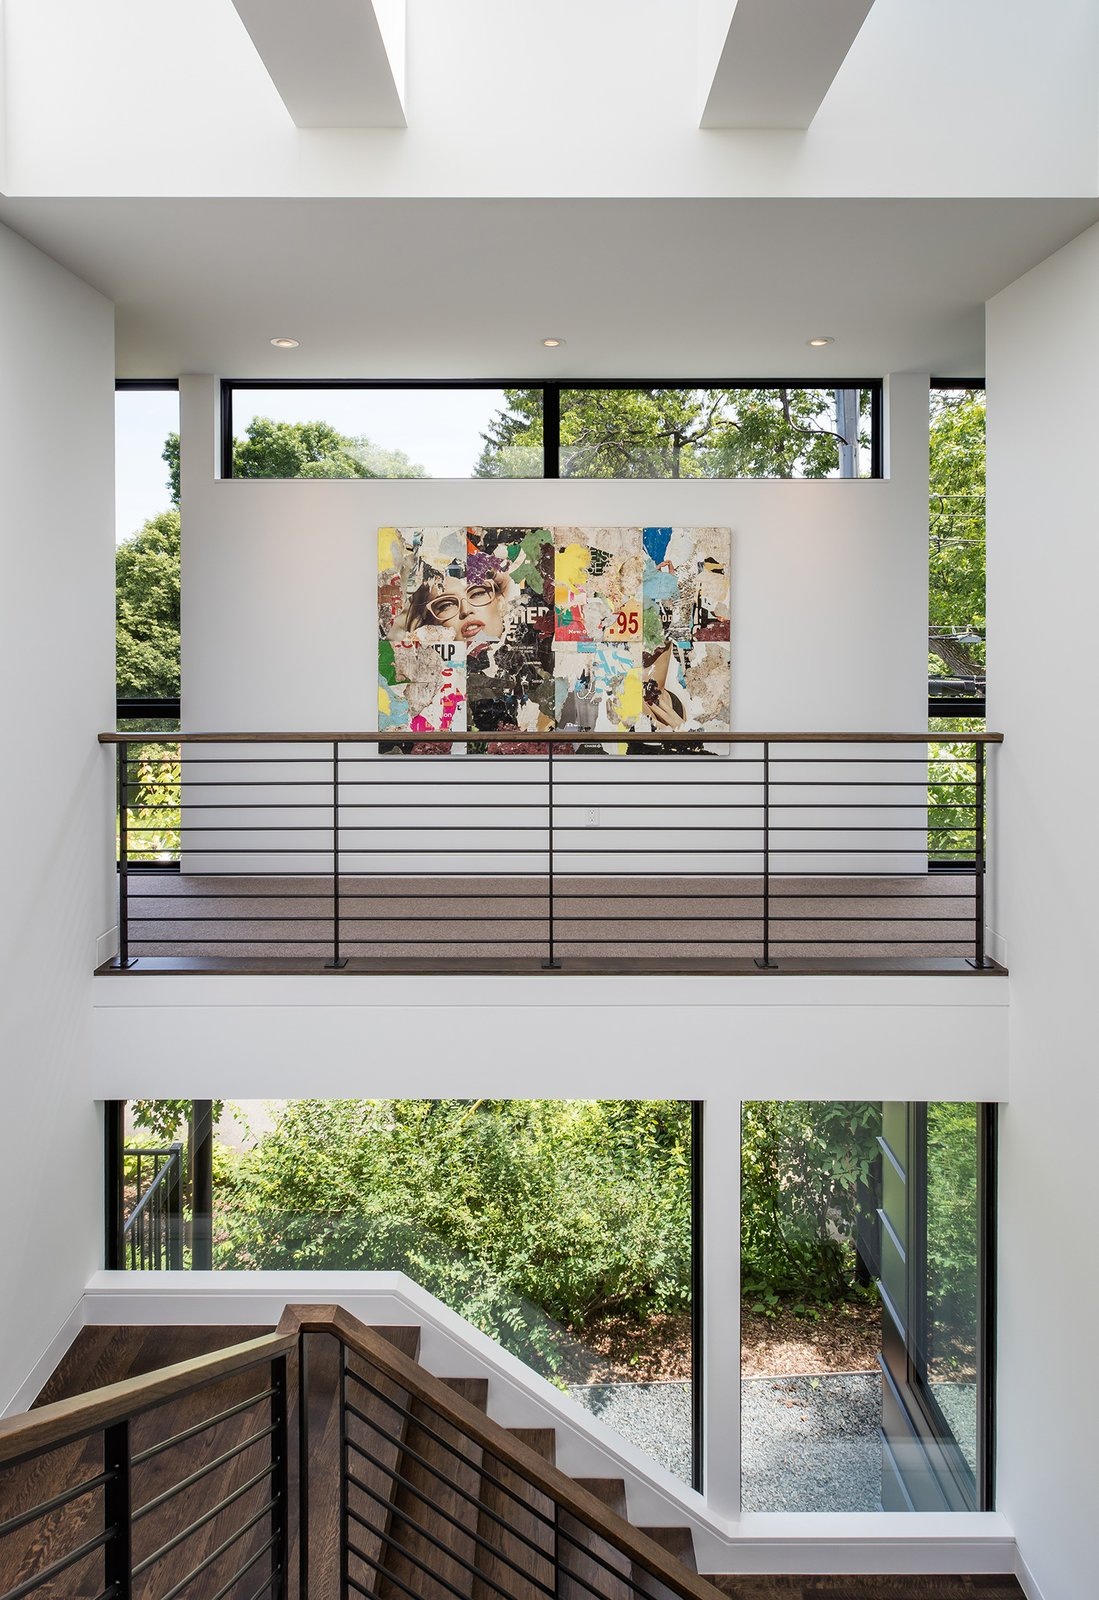 Tagged: Metal Railing, Wood Tread, Windows, Picture Window Type, Awning Window Type, Casement Window Type, and Metal.  Calhoun Pavilions Residence by Peterssen/Keller Architecture